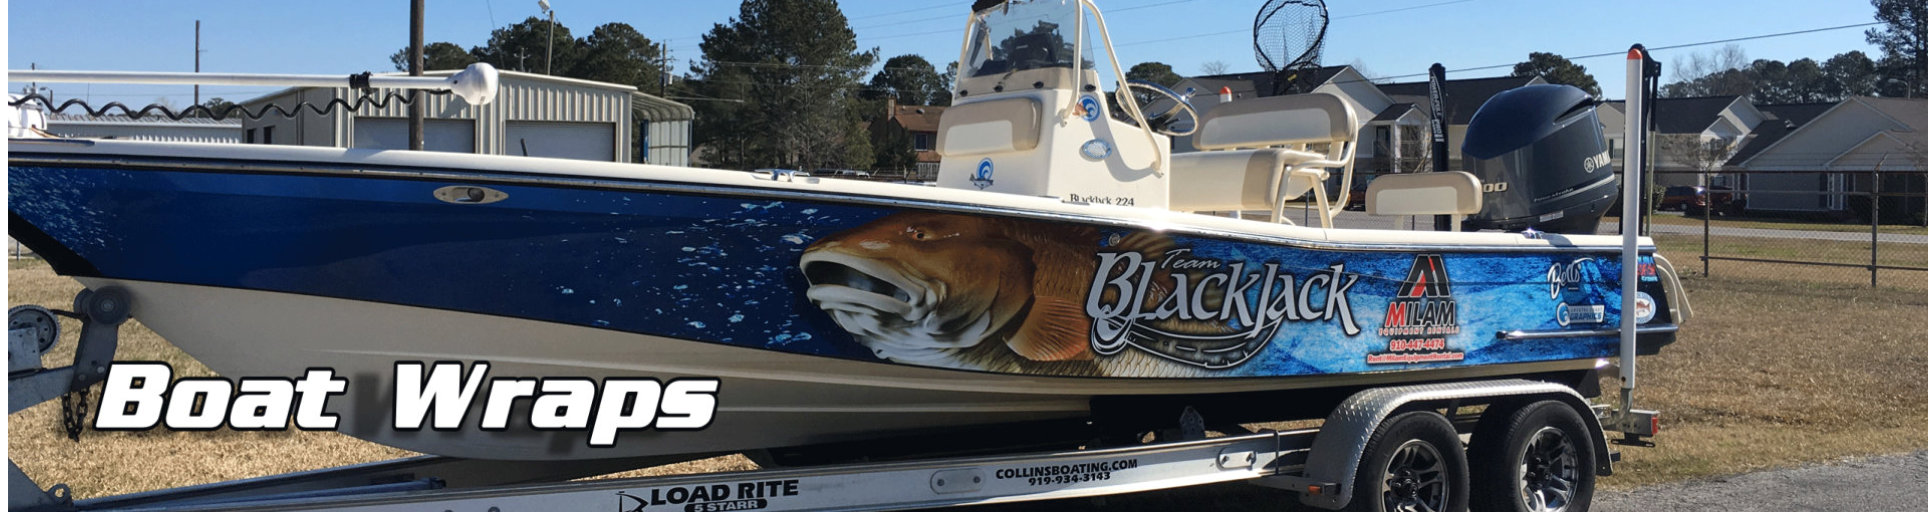 a picture of a boat in wrap advertising